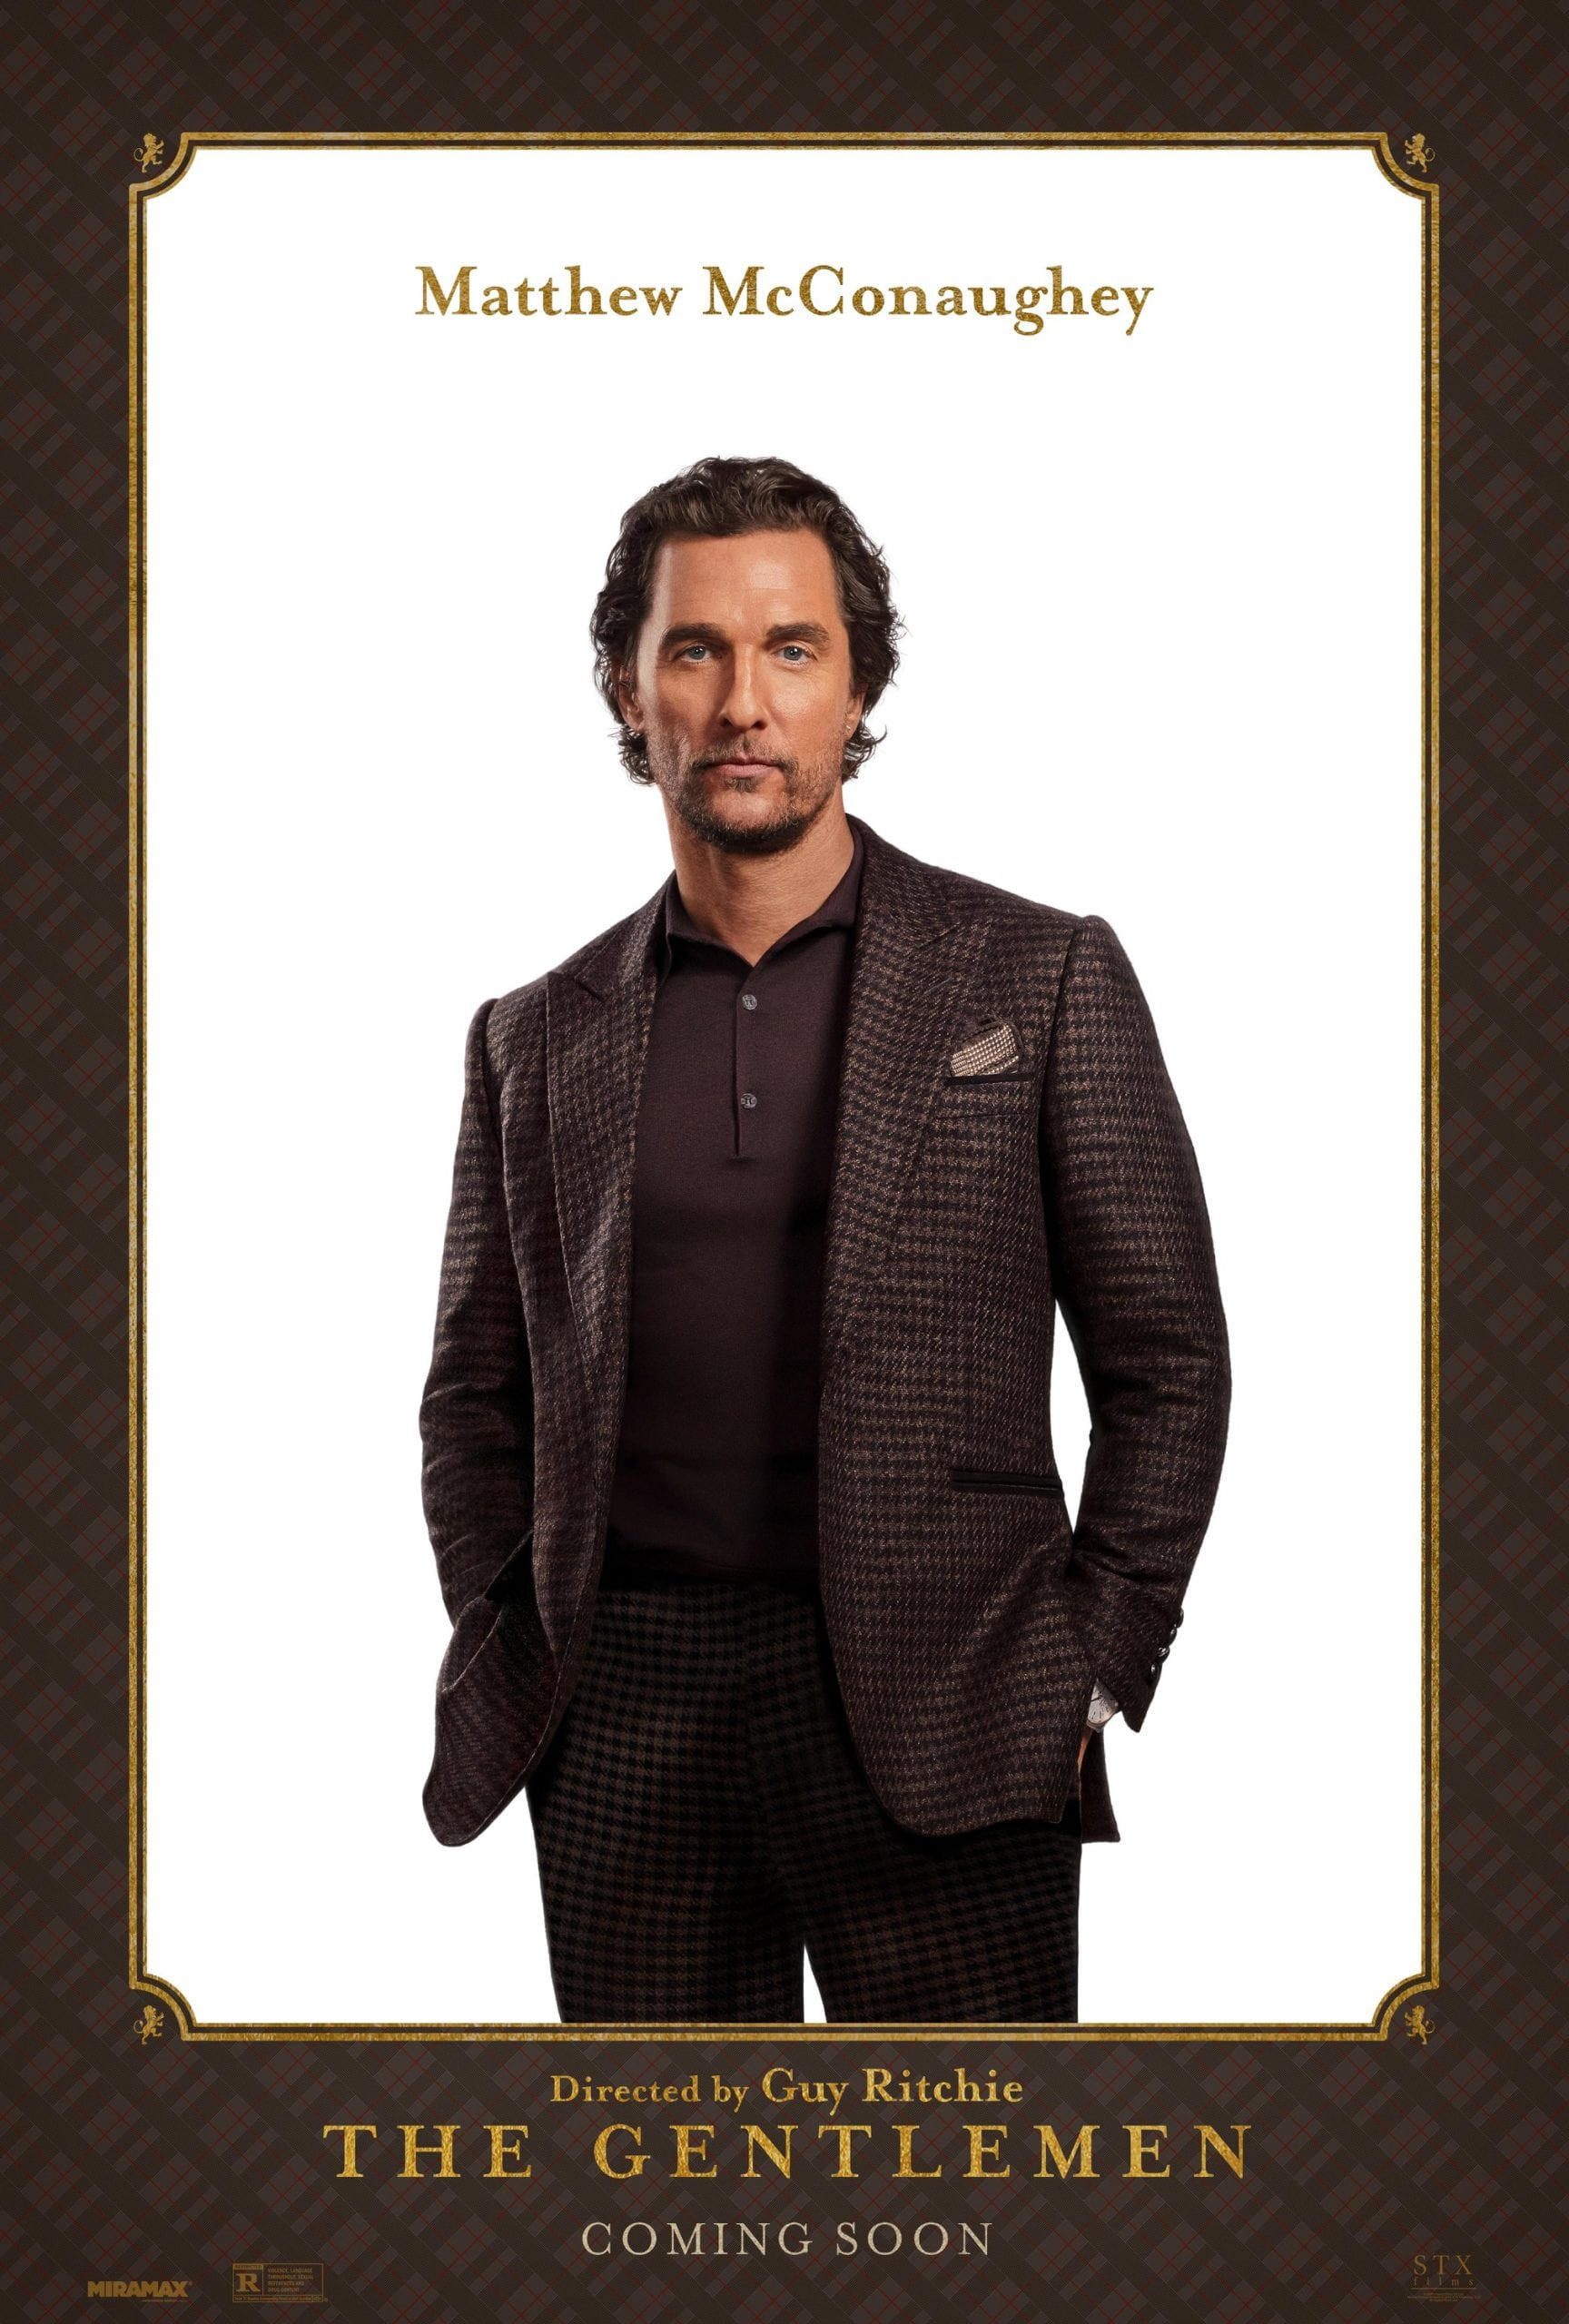 Matthew McConaughey as Michael Mickey Pearson The Gentlemen Character Posters